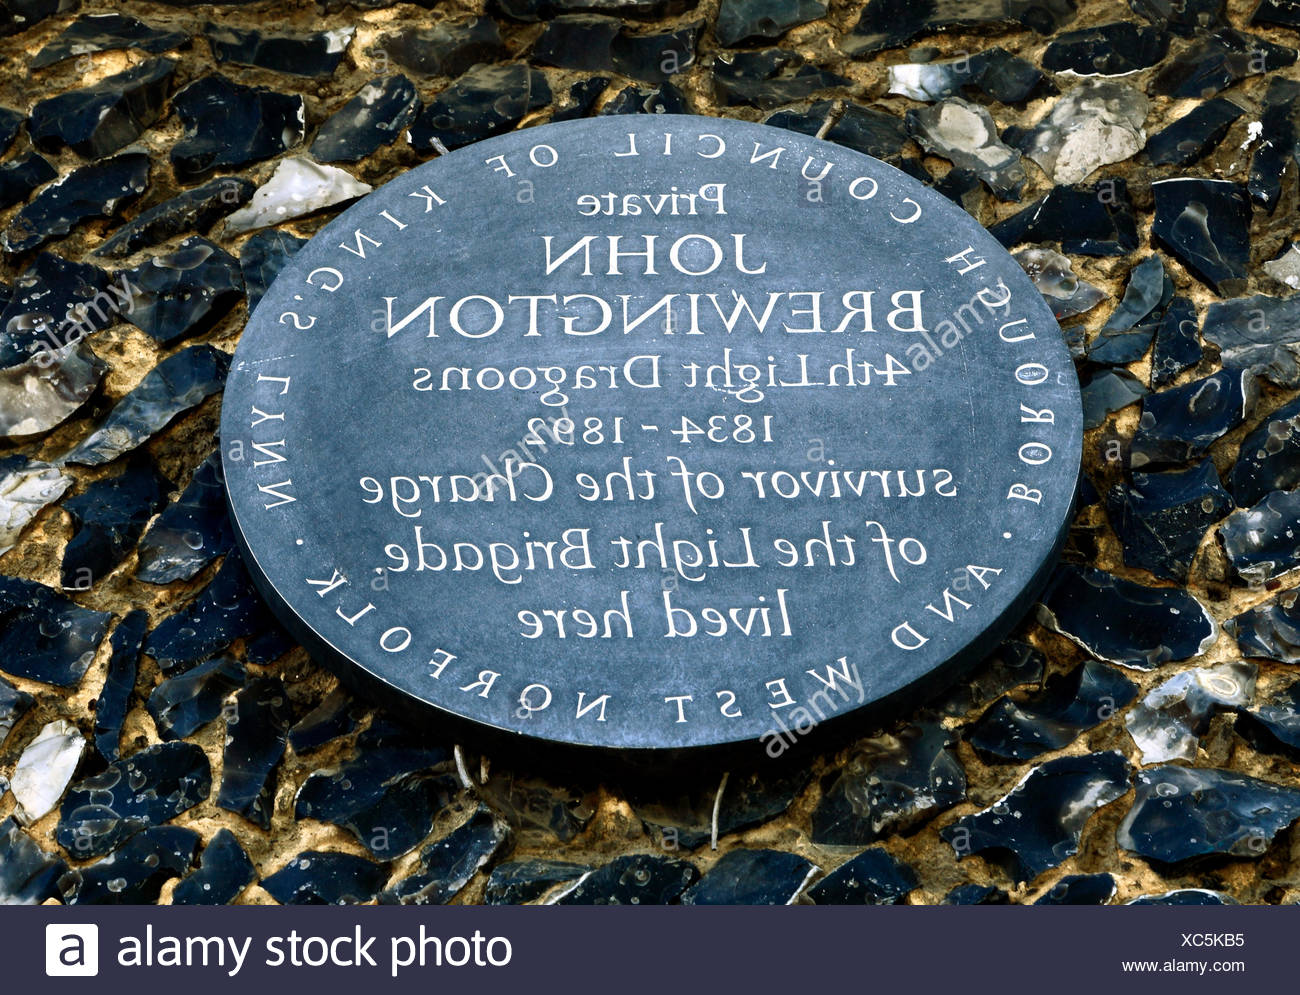 Charge of the Light Brigade, private John Brewington, 4th Light Dragoons Regiment, British soldier, memorial plaque, Feltwell, Norfolk, England, UK - Stock Image